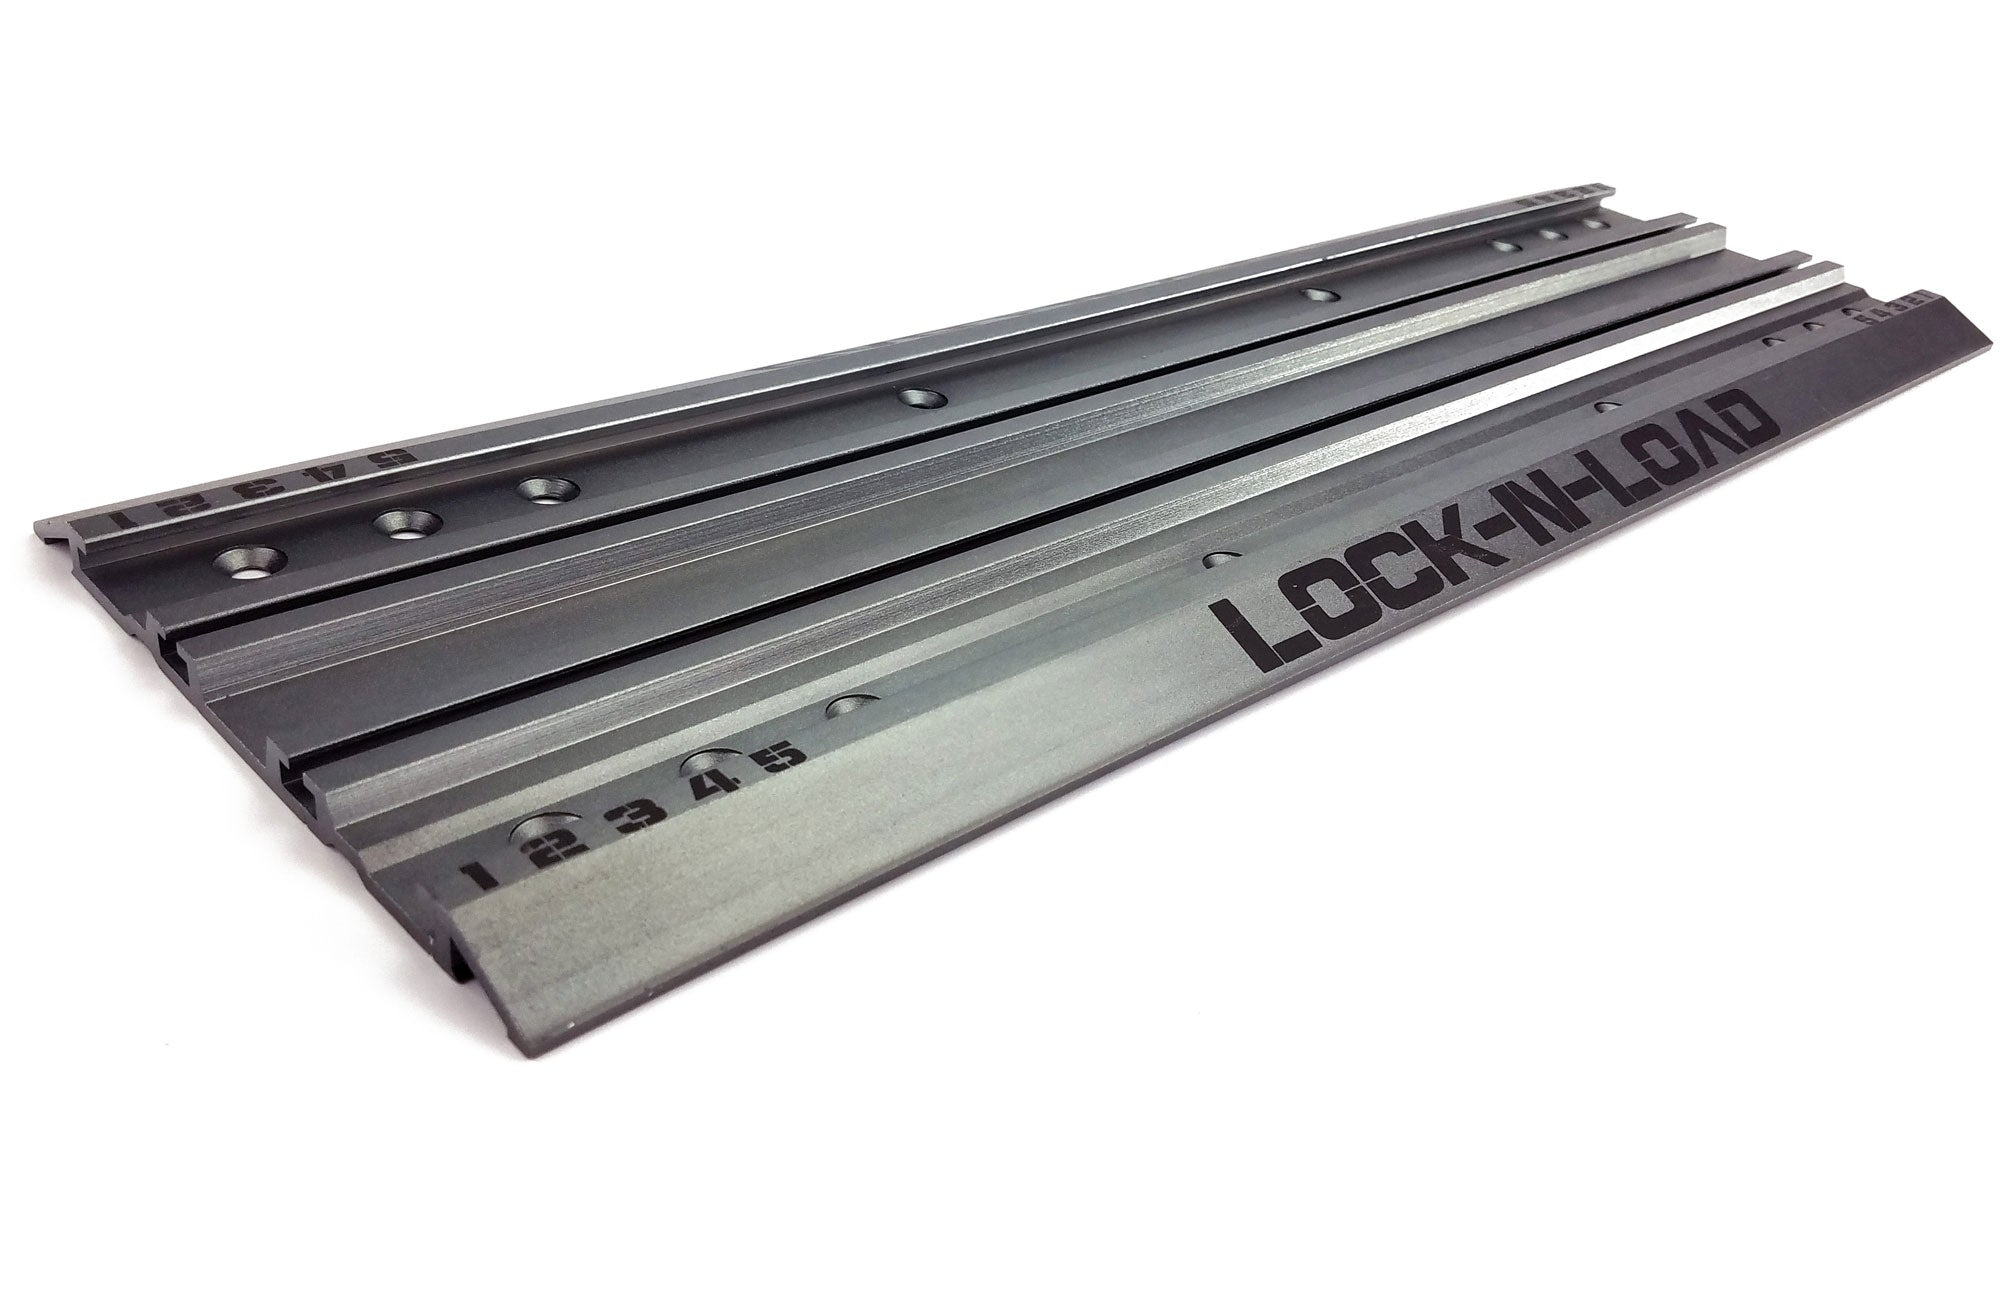 Lock-N-Load Pro Additional Mounting Plate